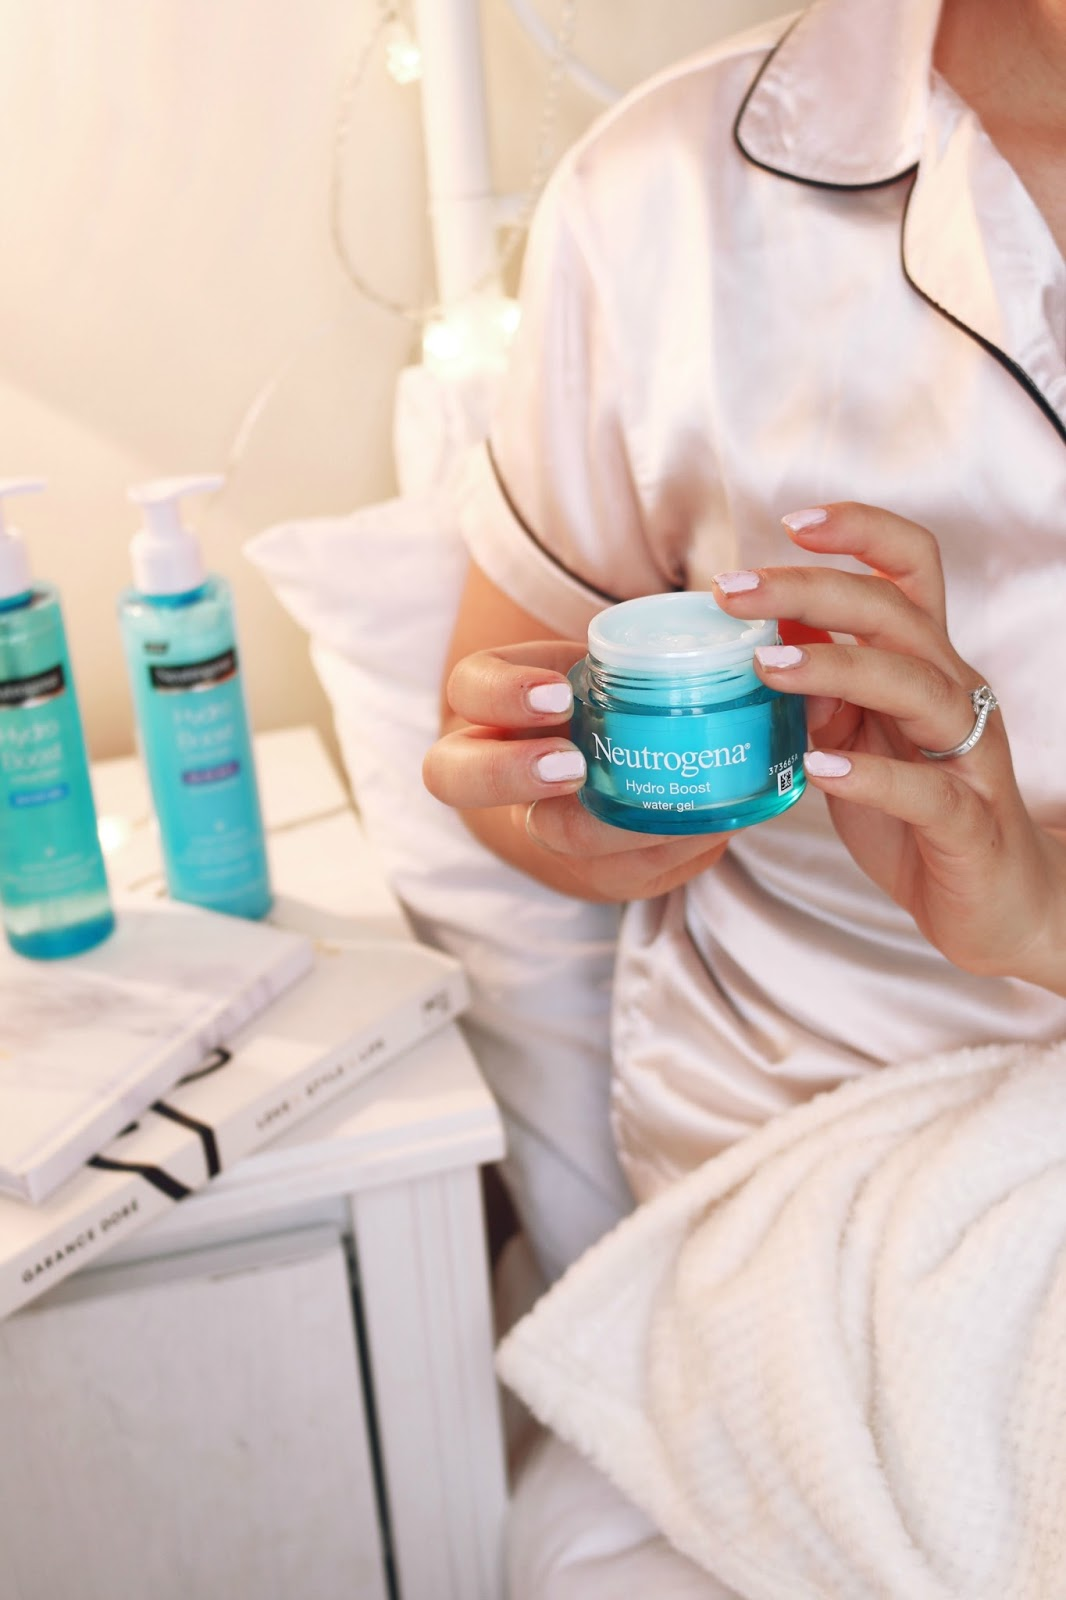 Beauty, Skincare, Drugstore, Neutrogena, Neutrogena Hydro Boost Range, Neutrogena Hydro Boost Range Review, dehydrated skin, how to banish dry skin left behind from winter